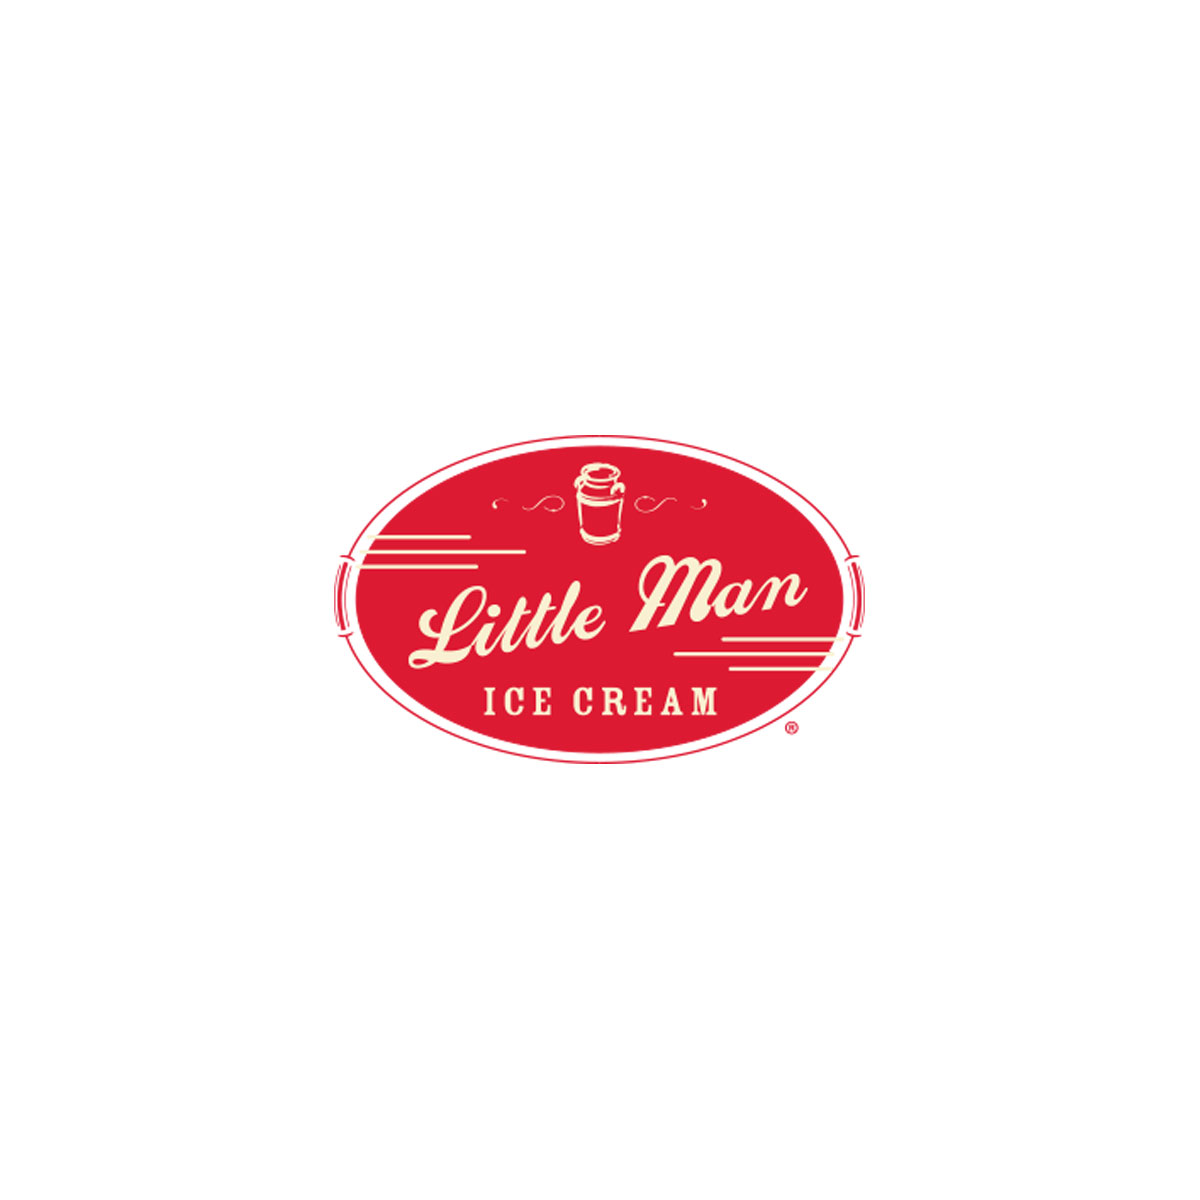 Little Man Ice Cream logo